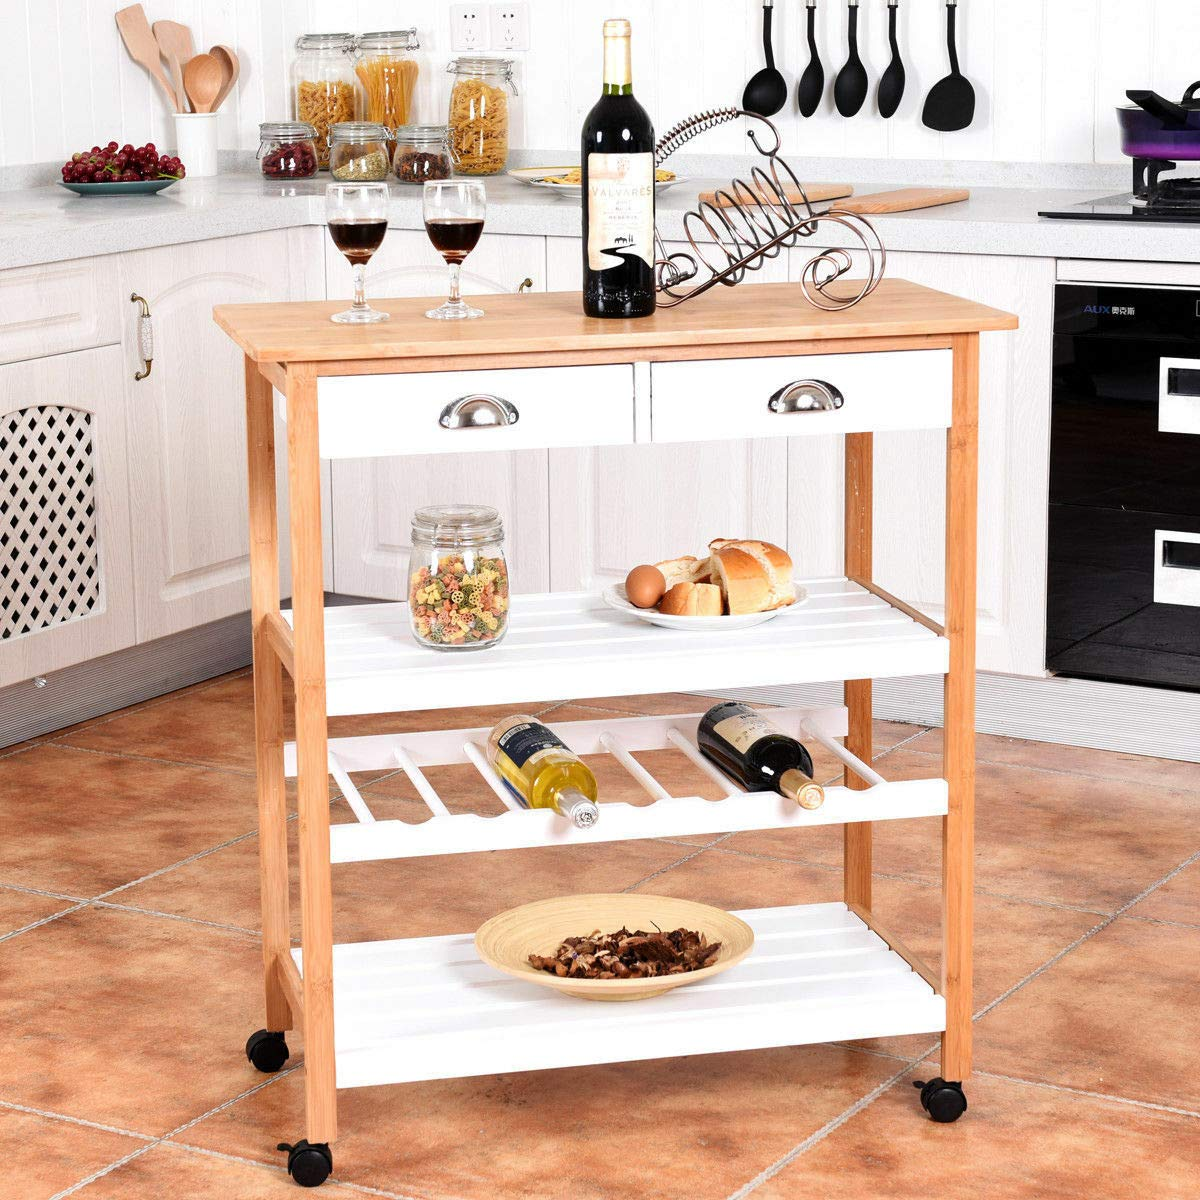 Bamboo Rolling Kitchen Trolley Cart Storage Island Utility w/Drawers&Shelf